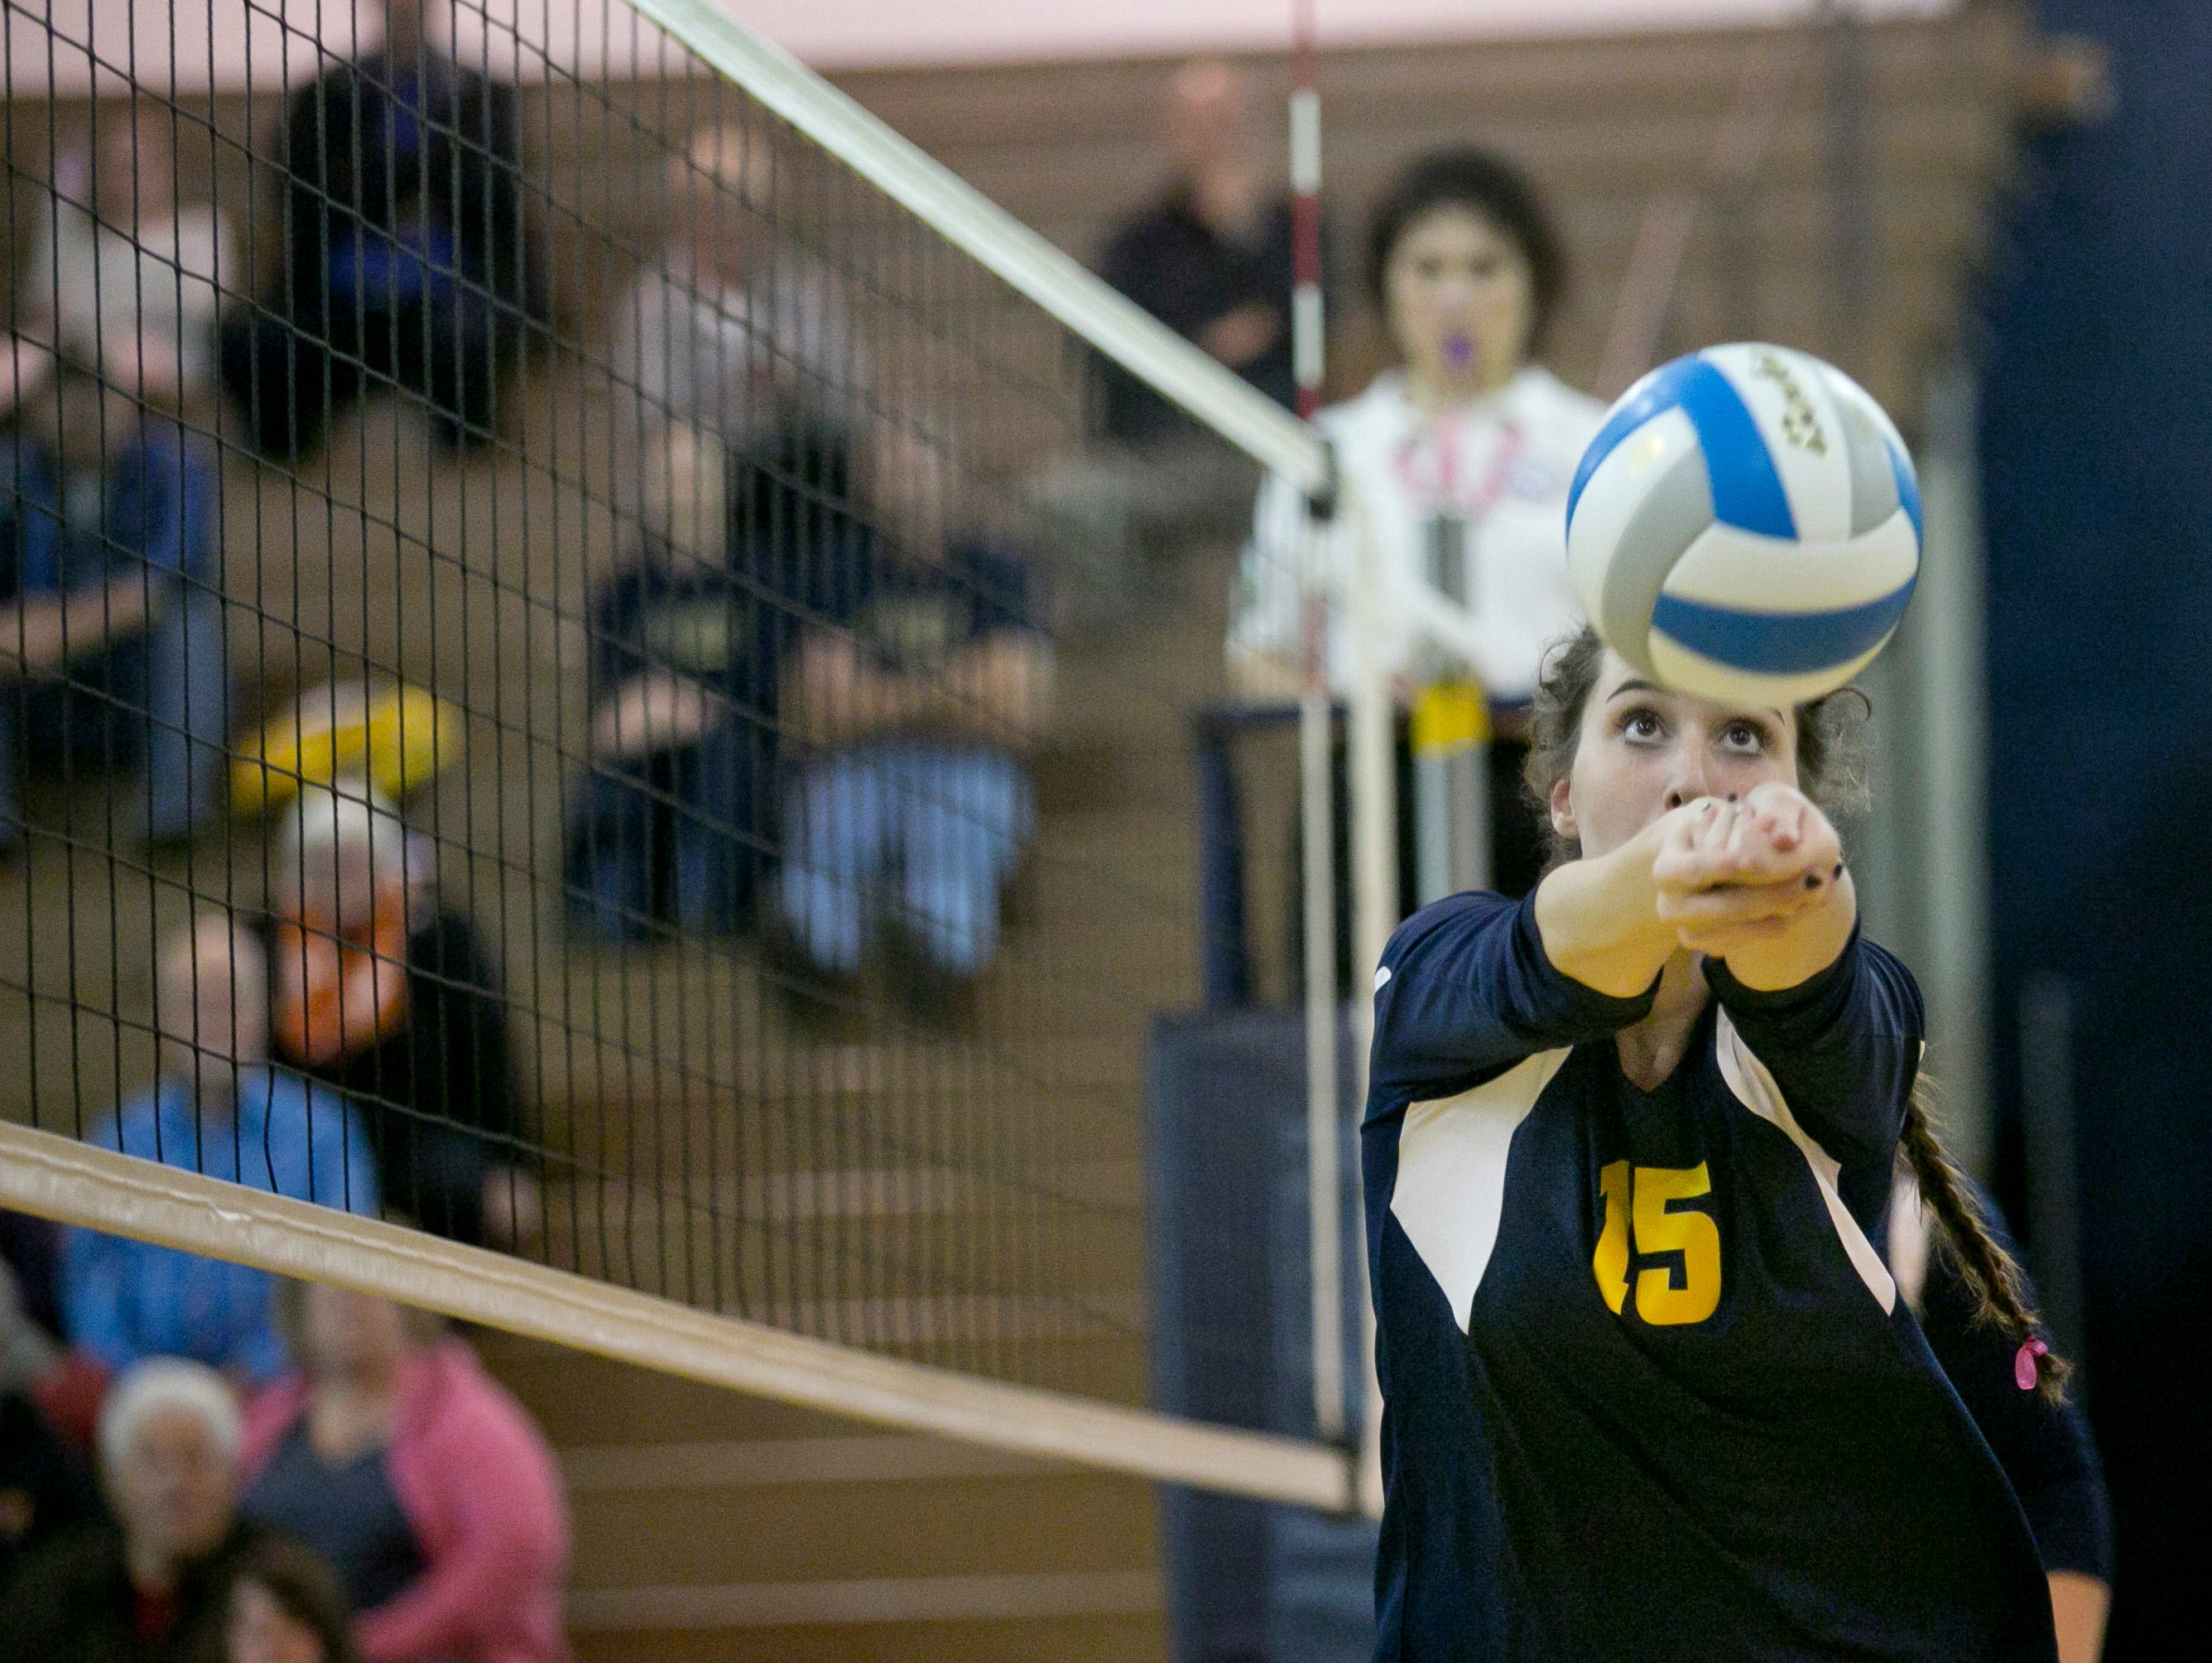 Port Huron Northern senior Carmen Rankin bumps the ball during a volleyball game Tuesday, October 27, 2015 at Port Huron Northern High School.